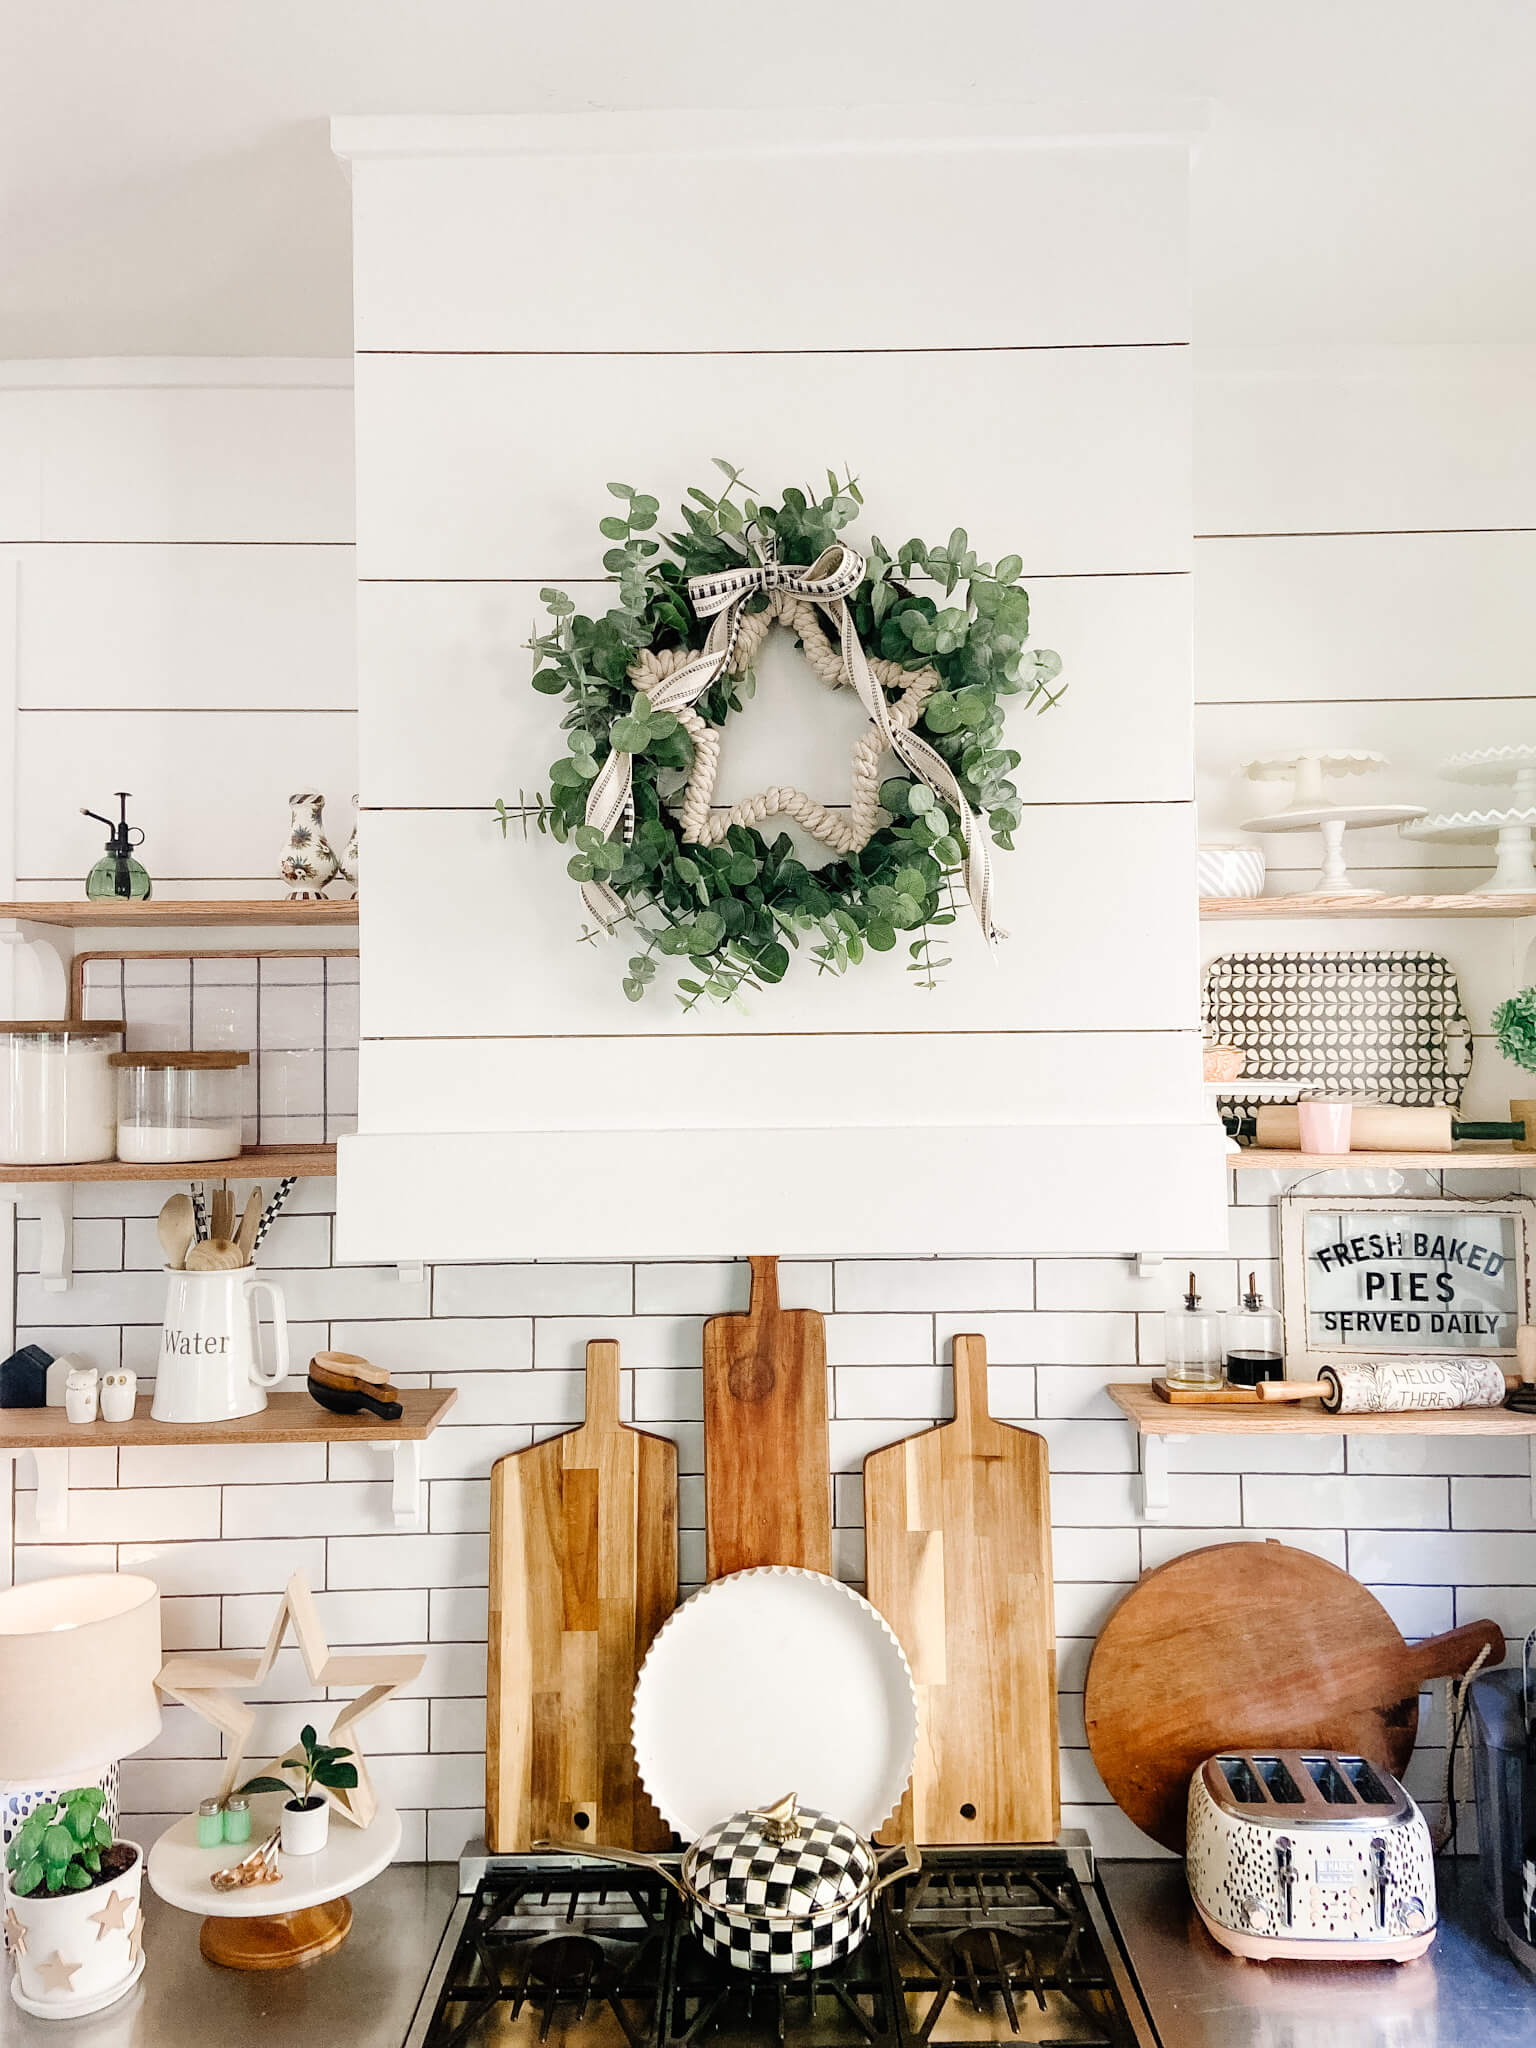 Welcome Home Saturday: Neutral Patriotic Dollar Store Wreath | Welcome Home Saturday by popular Alabama lifestyle blog, She Gave It A Go: image of a farmhouse kitchen with white shiplap walls, white subway tile backdrop, wooden cutting boards, light wood floating shelves decorated with white ceramic dishes, wooden cooking utensils, wire baskets, and filling pins, a gas range stove, and a faux eucalyptus and white pom pom wreath.